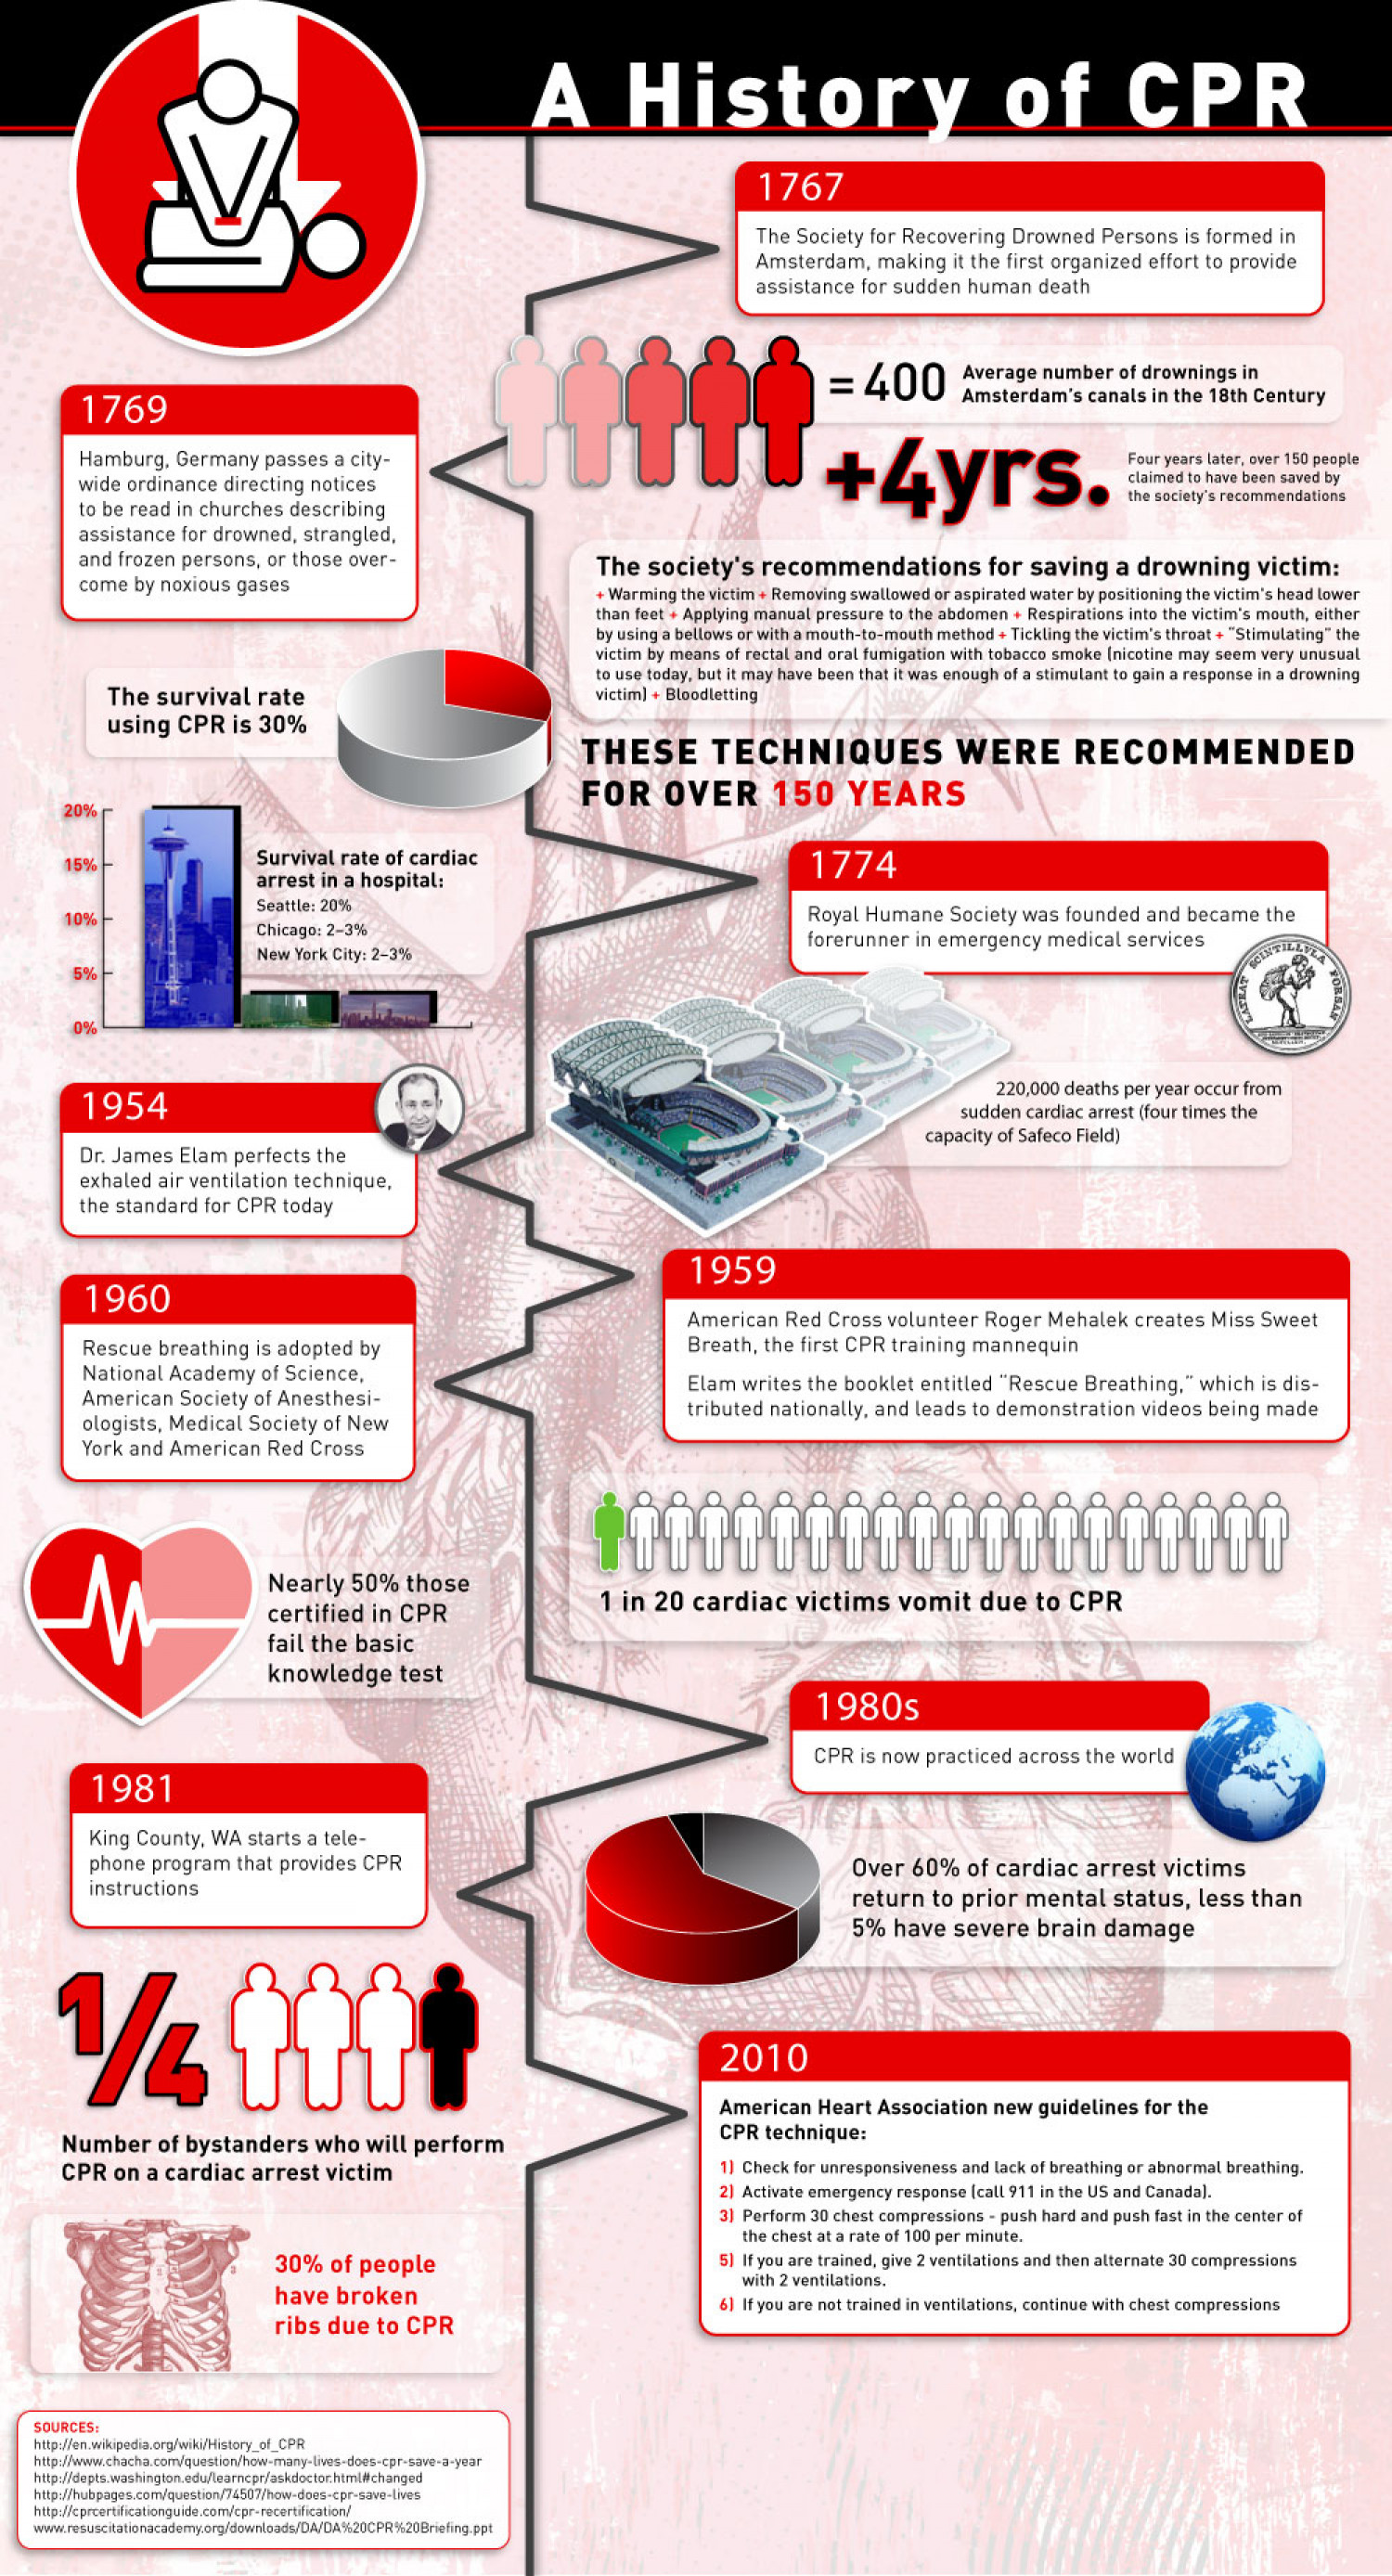 A History of CPR  Infographic